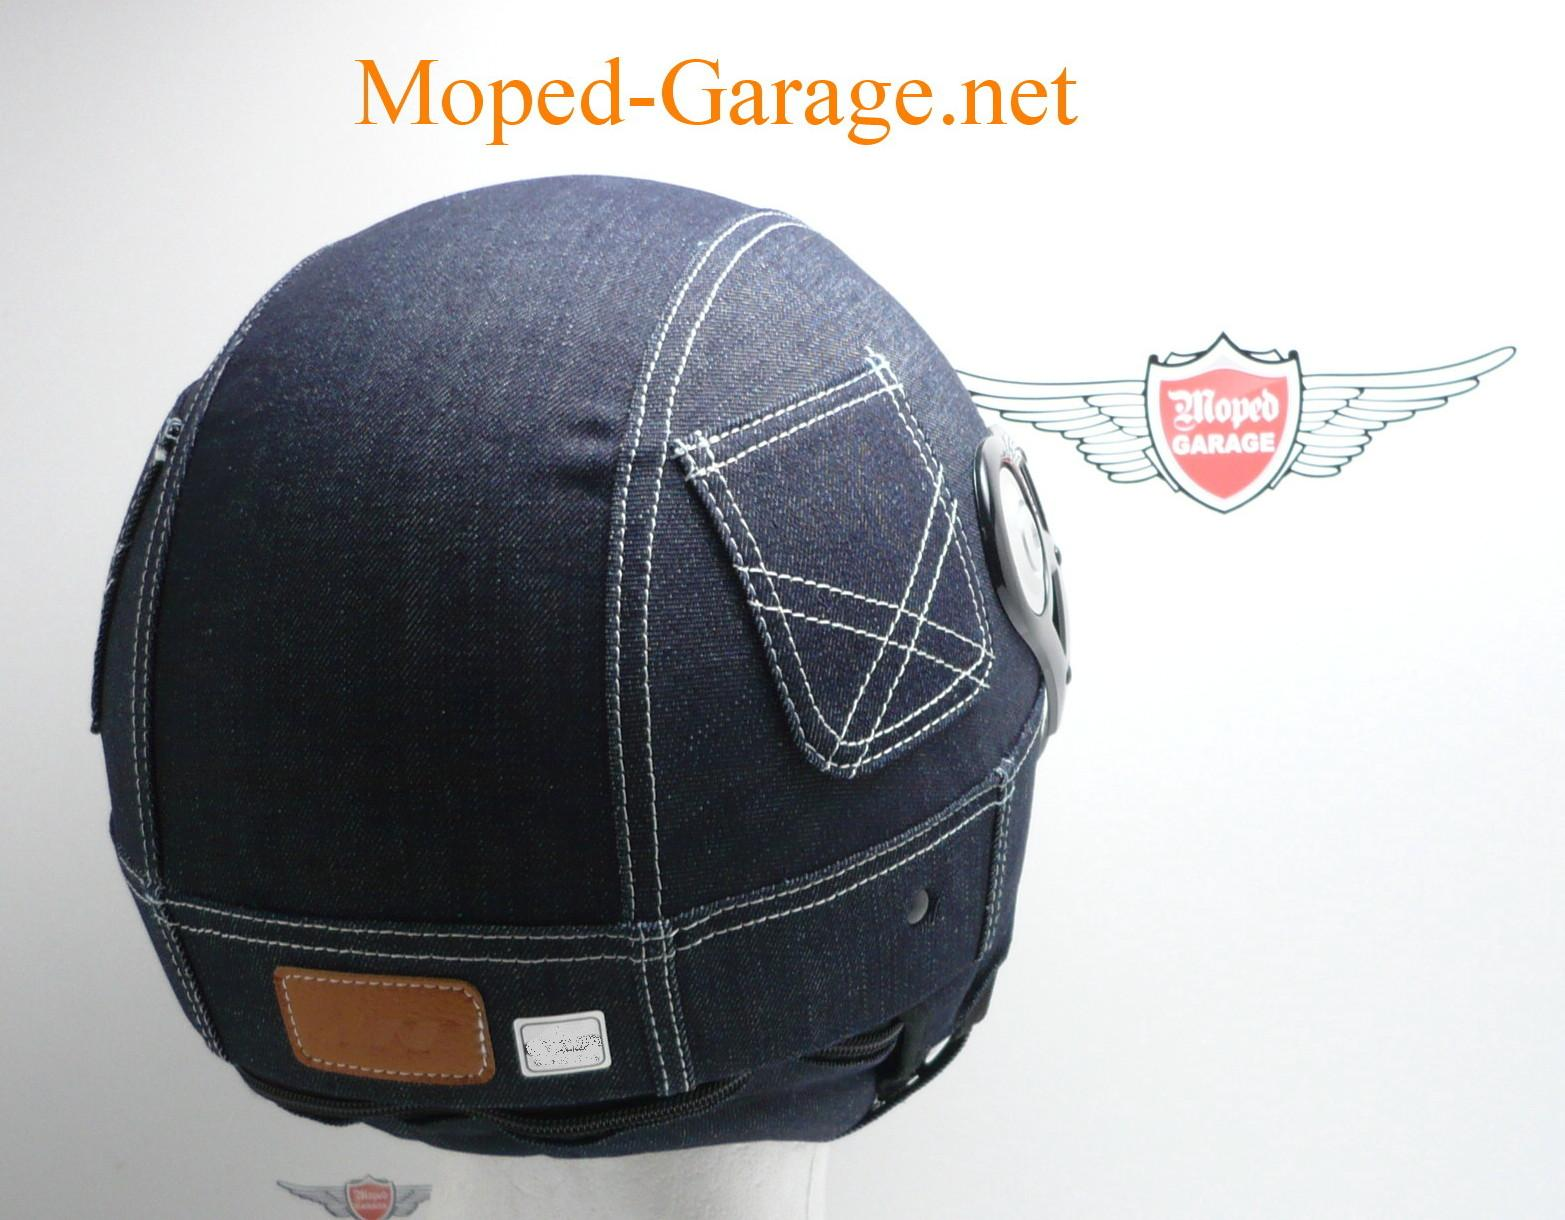 moped motorrad mofa moped roller retro jeans. Black Bedroom Furniture Sets. Home Design Ideas